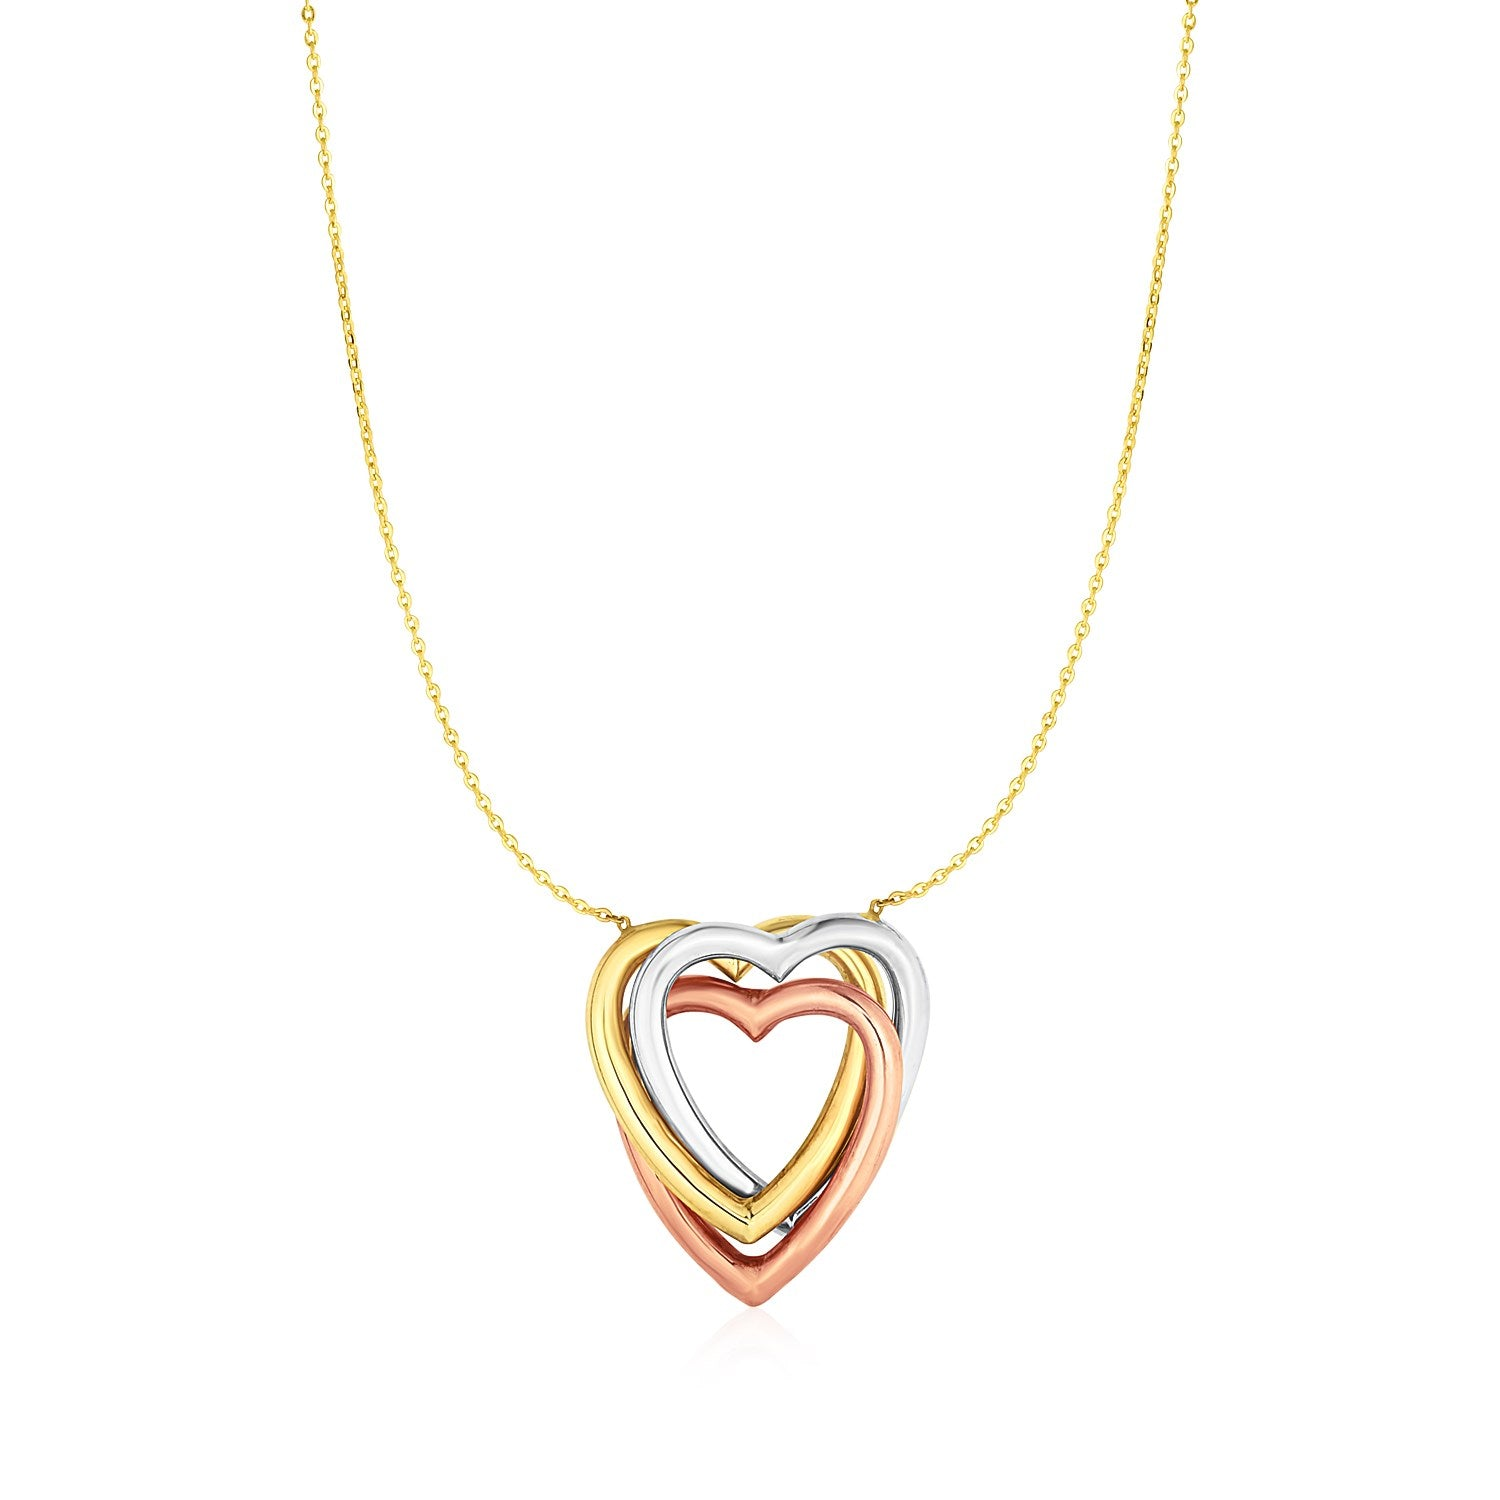 Unique Hollywood Style Necklace with Heart Pendant in 10K Tri Color Gold